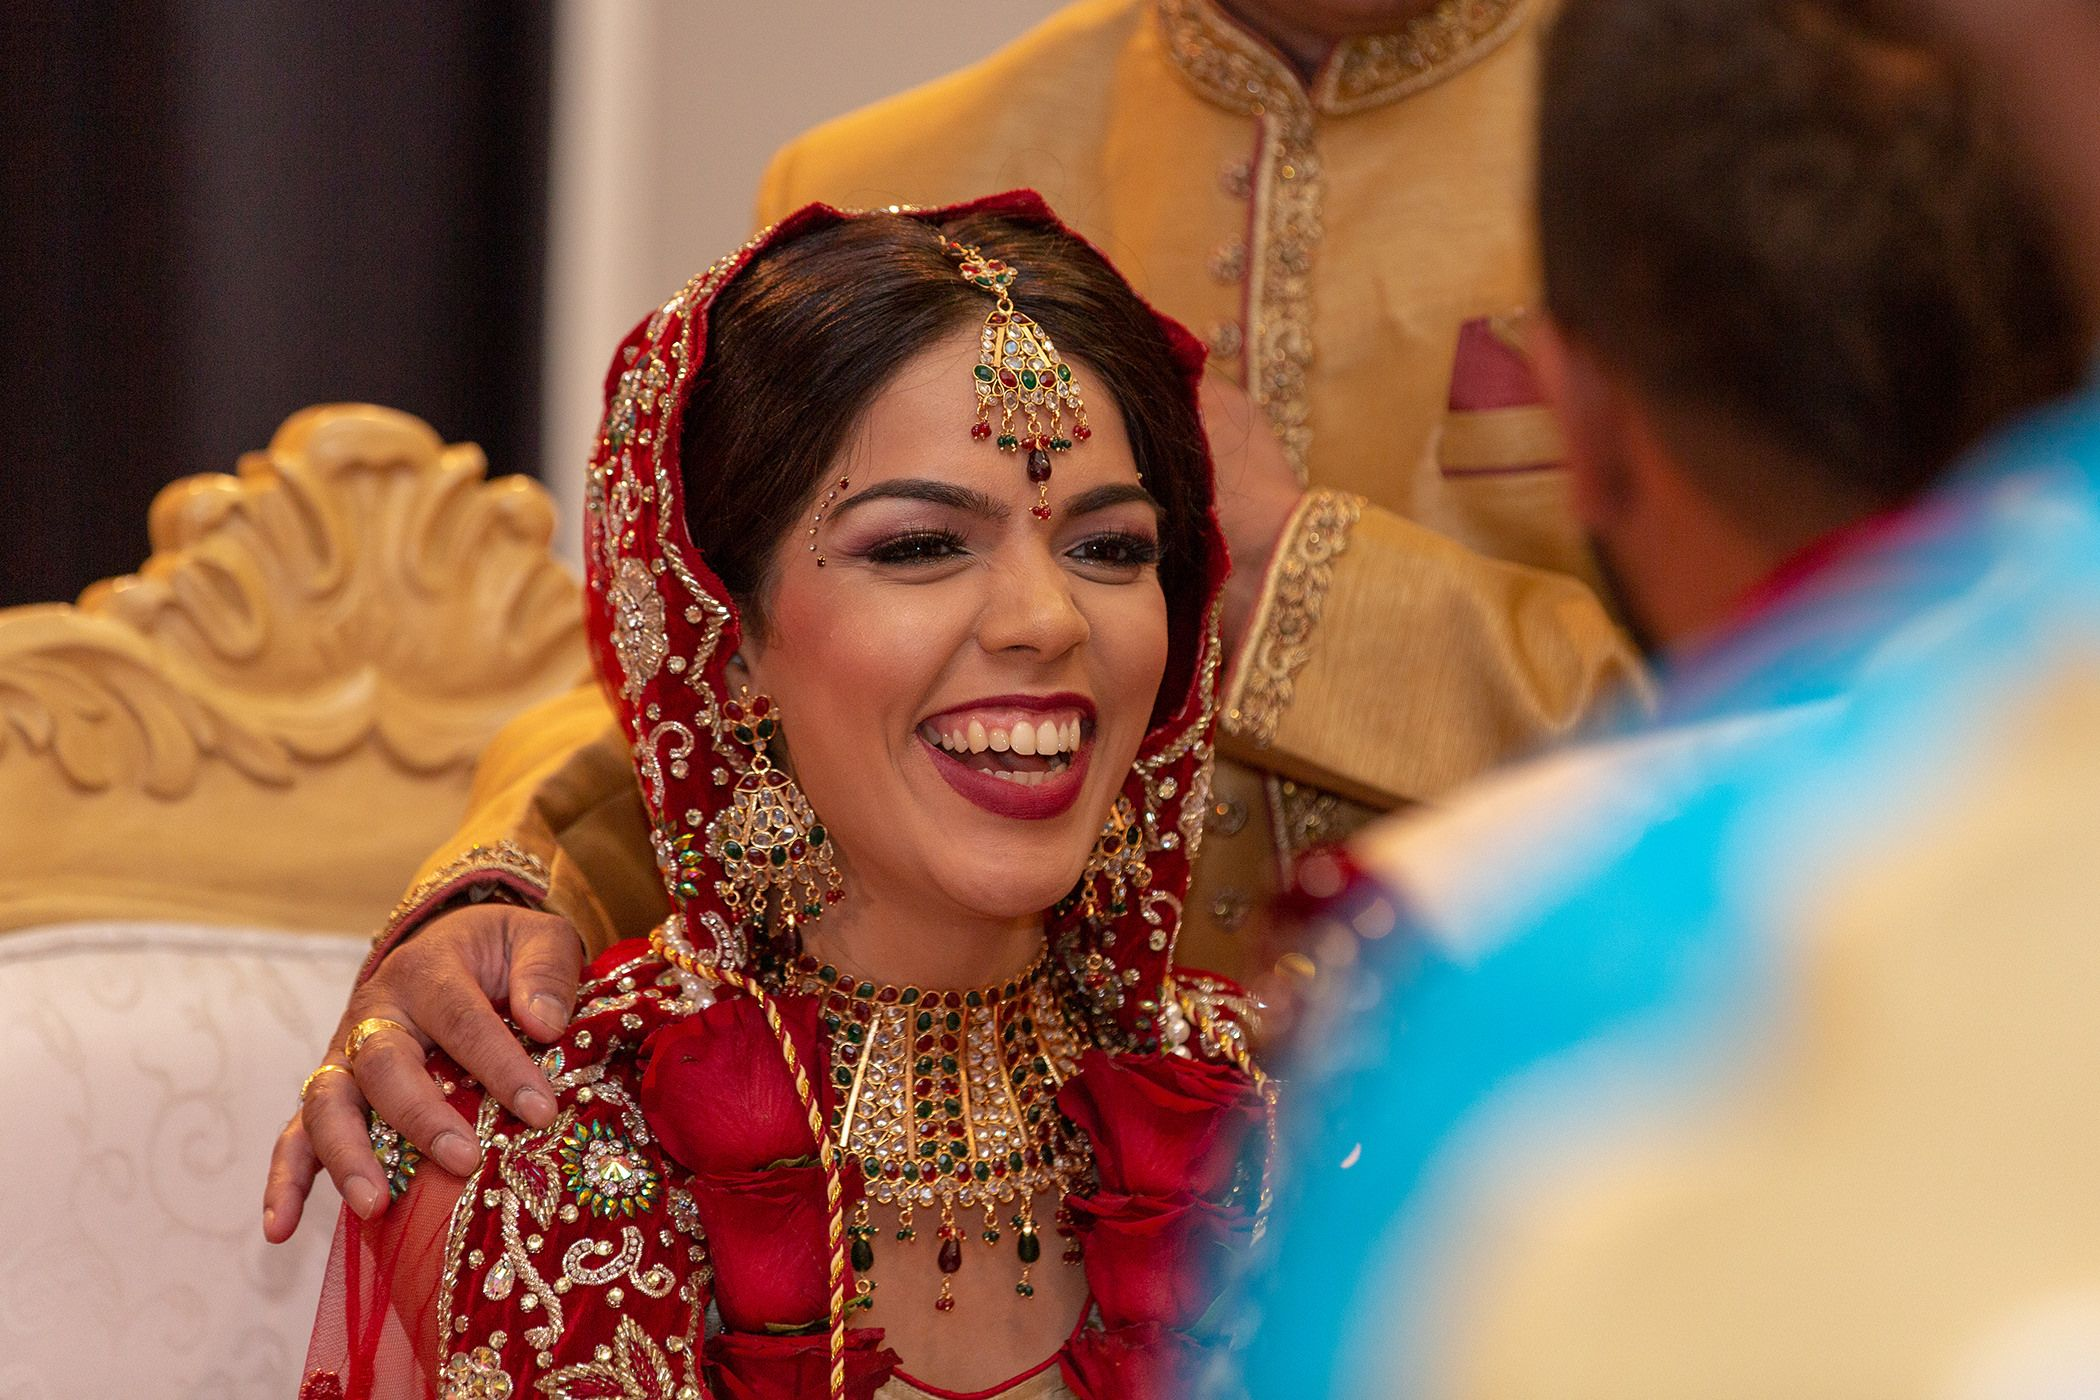 The bride enjoying Indian wedding photography